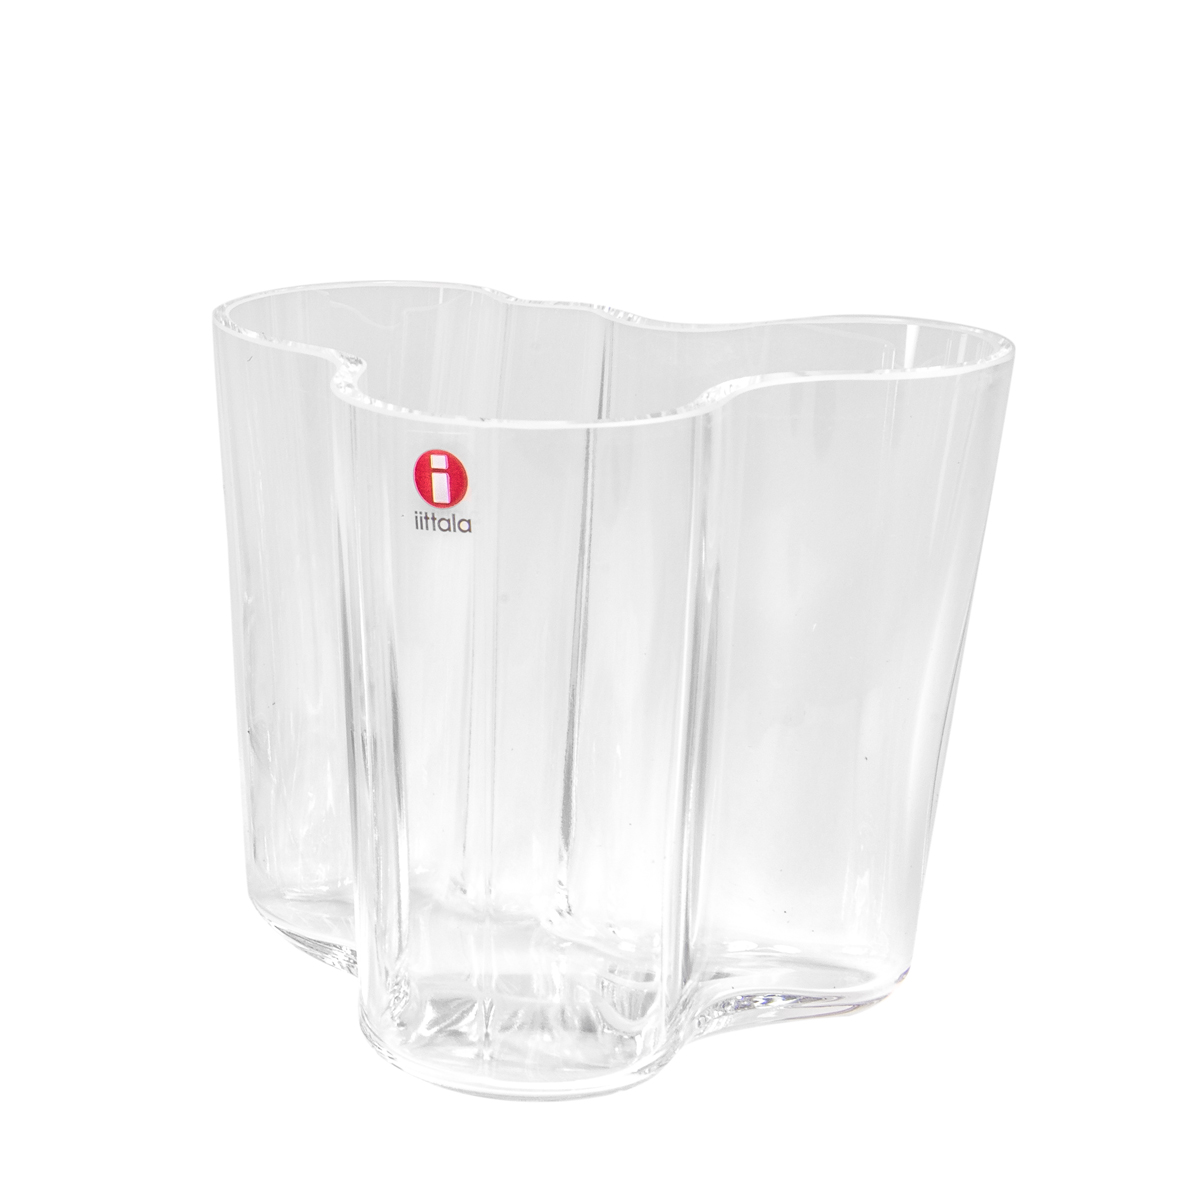 iittala aalto clear vase gift set discontinued out of stock 5. Black Bedroom Furniture Sets. Home Design Ideas